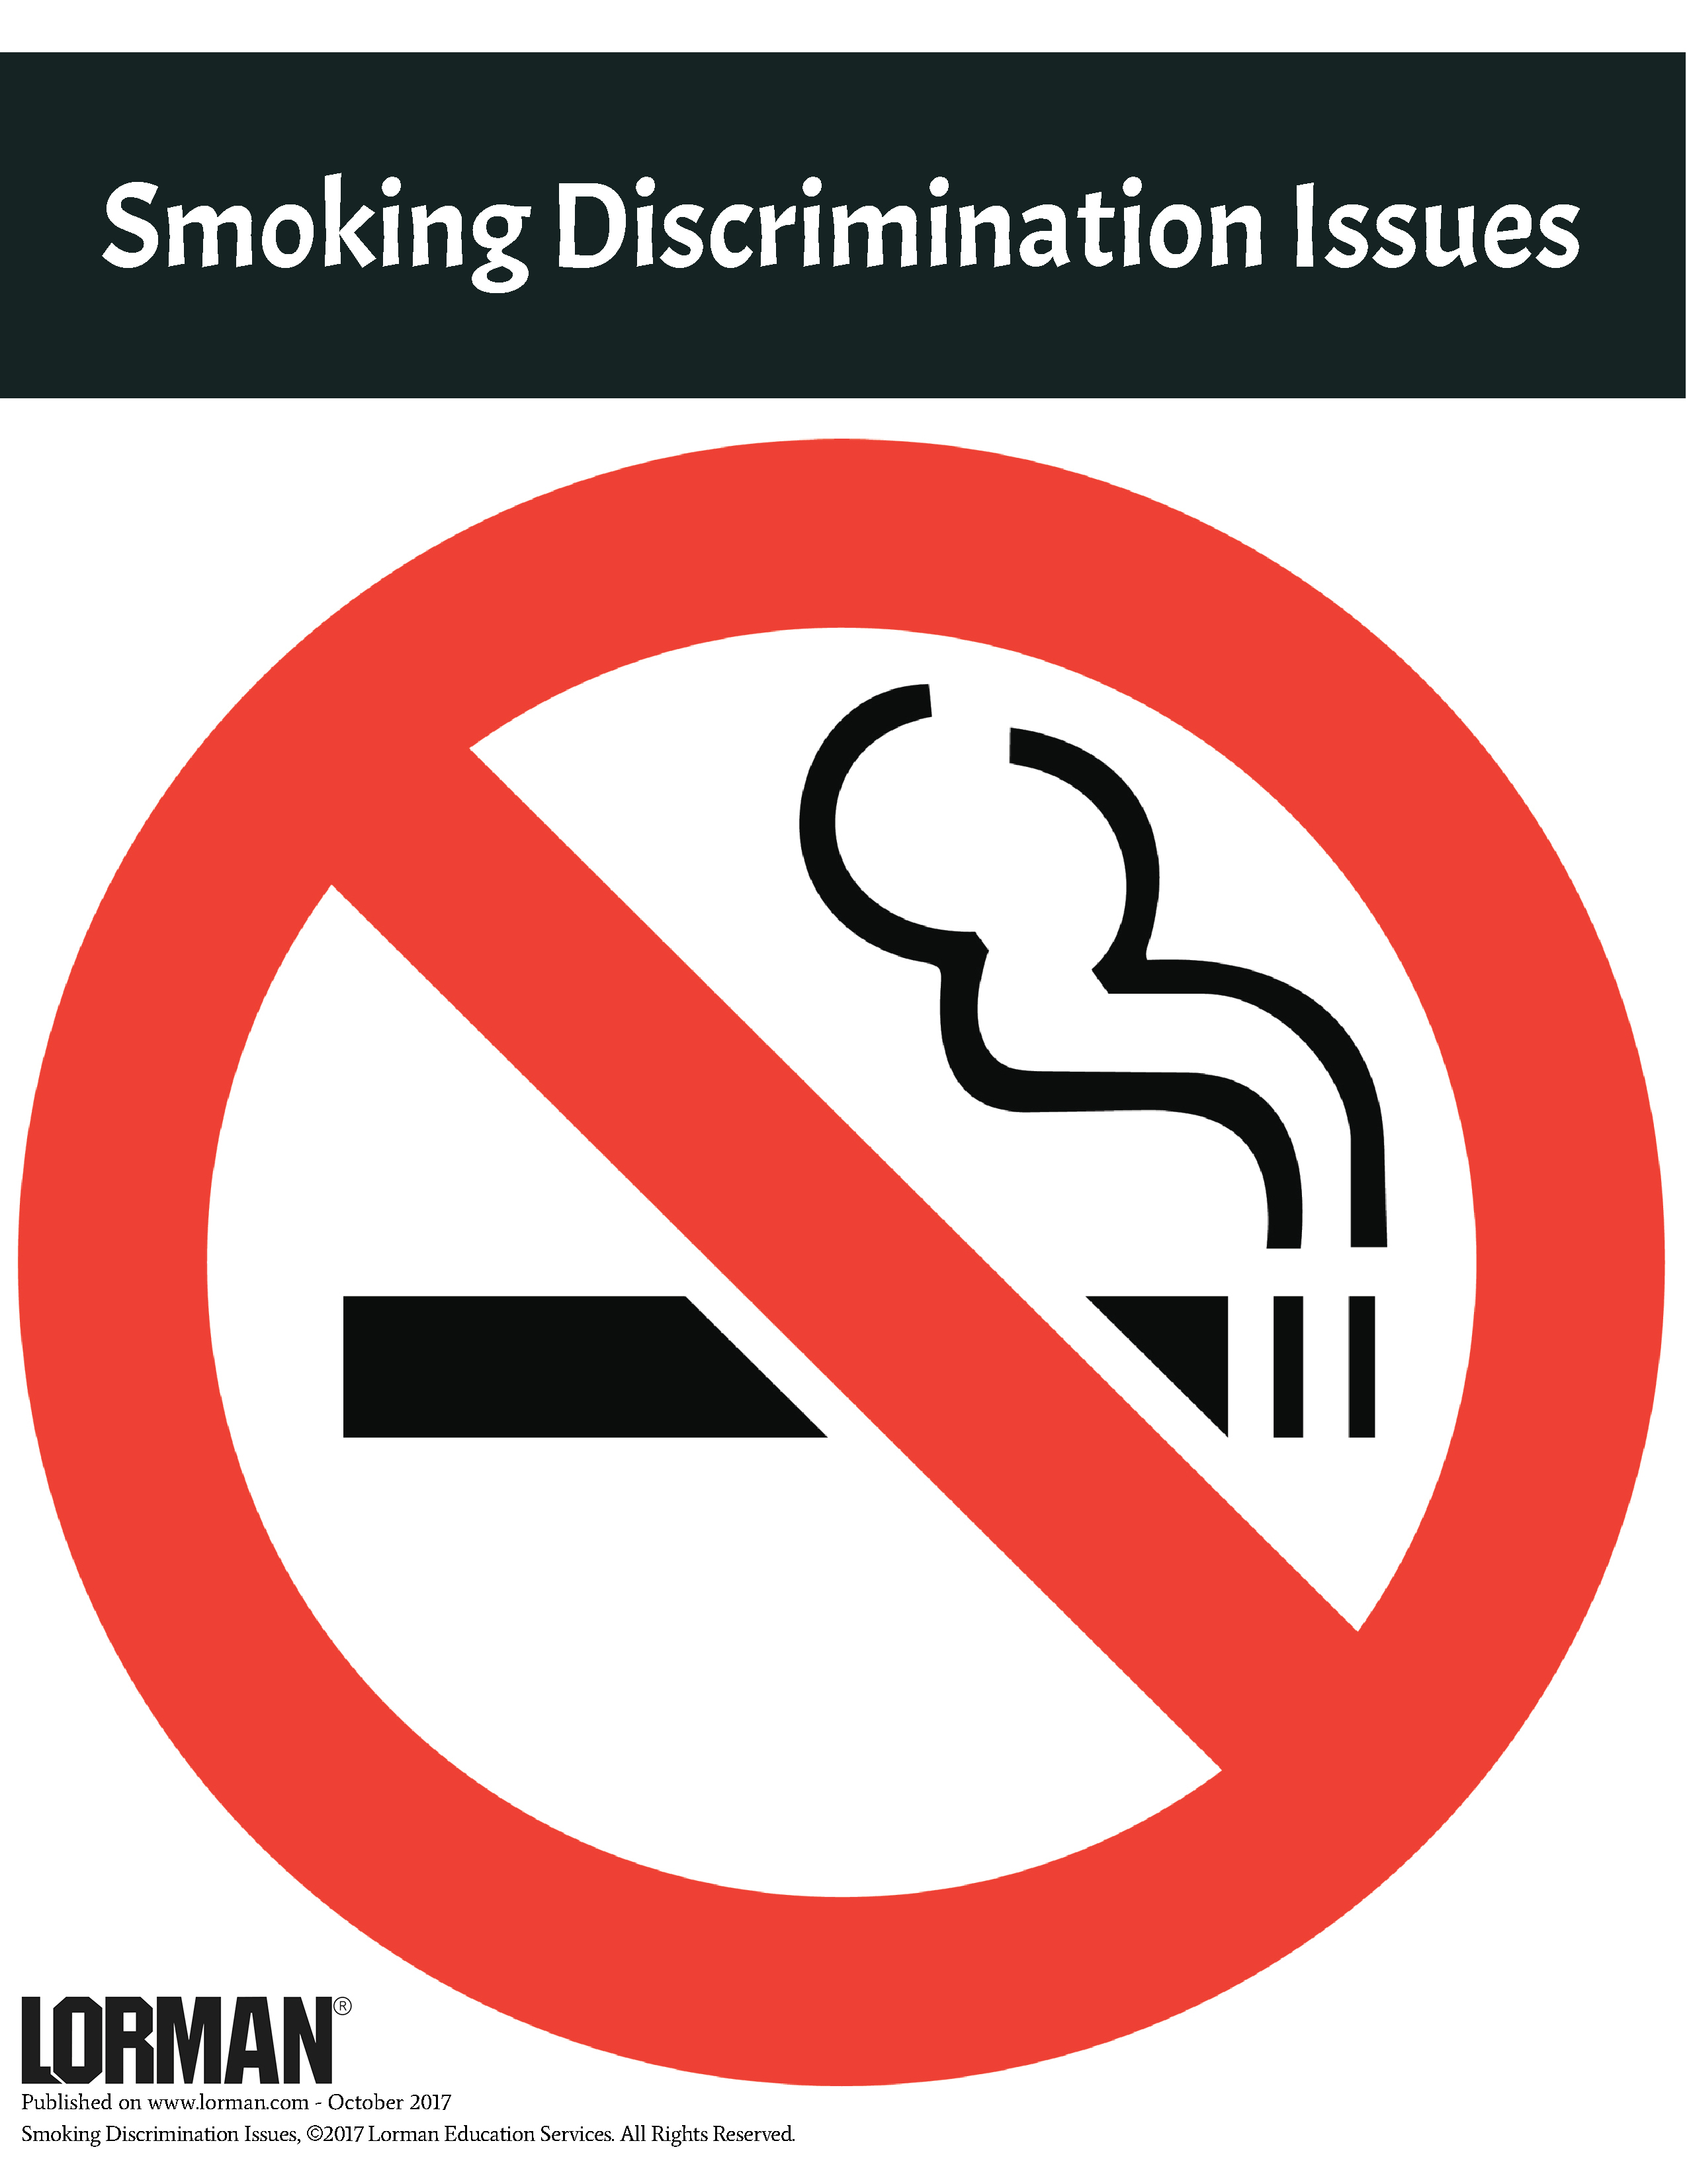 say no to smoking campaign essay